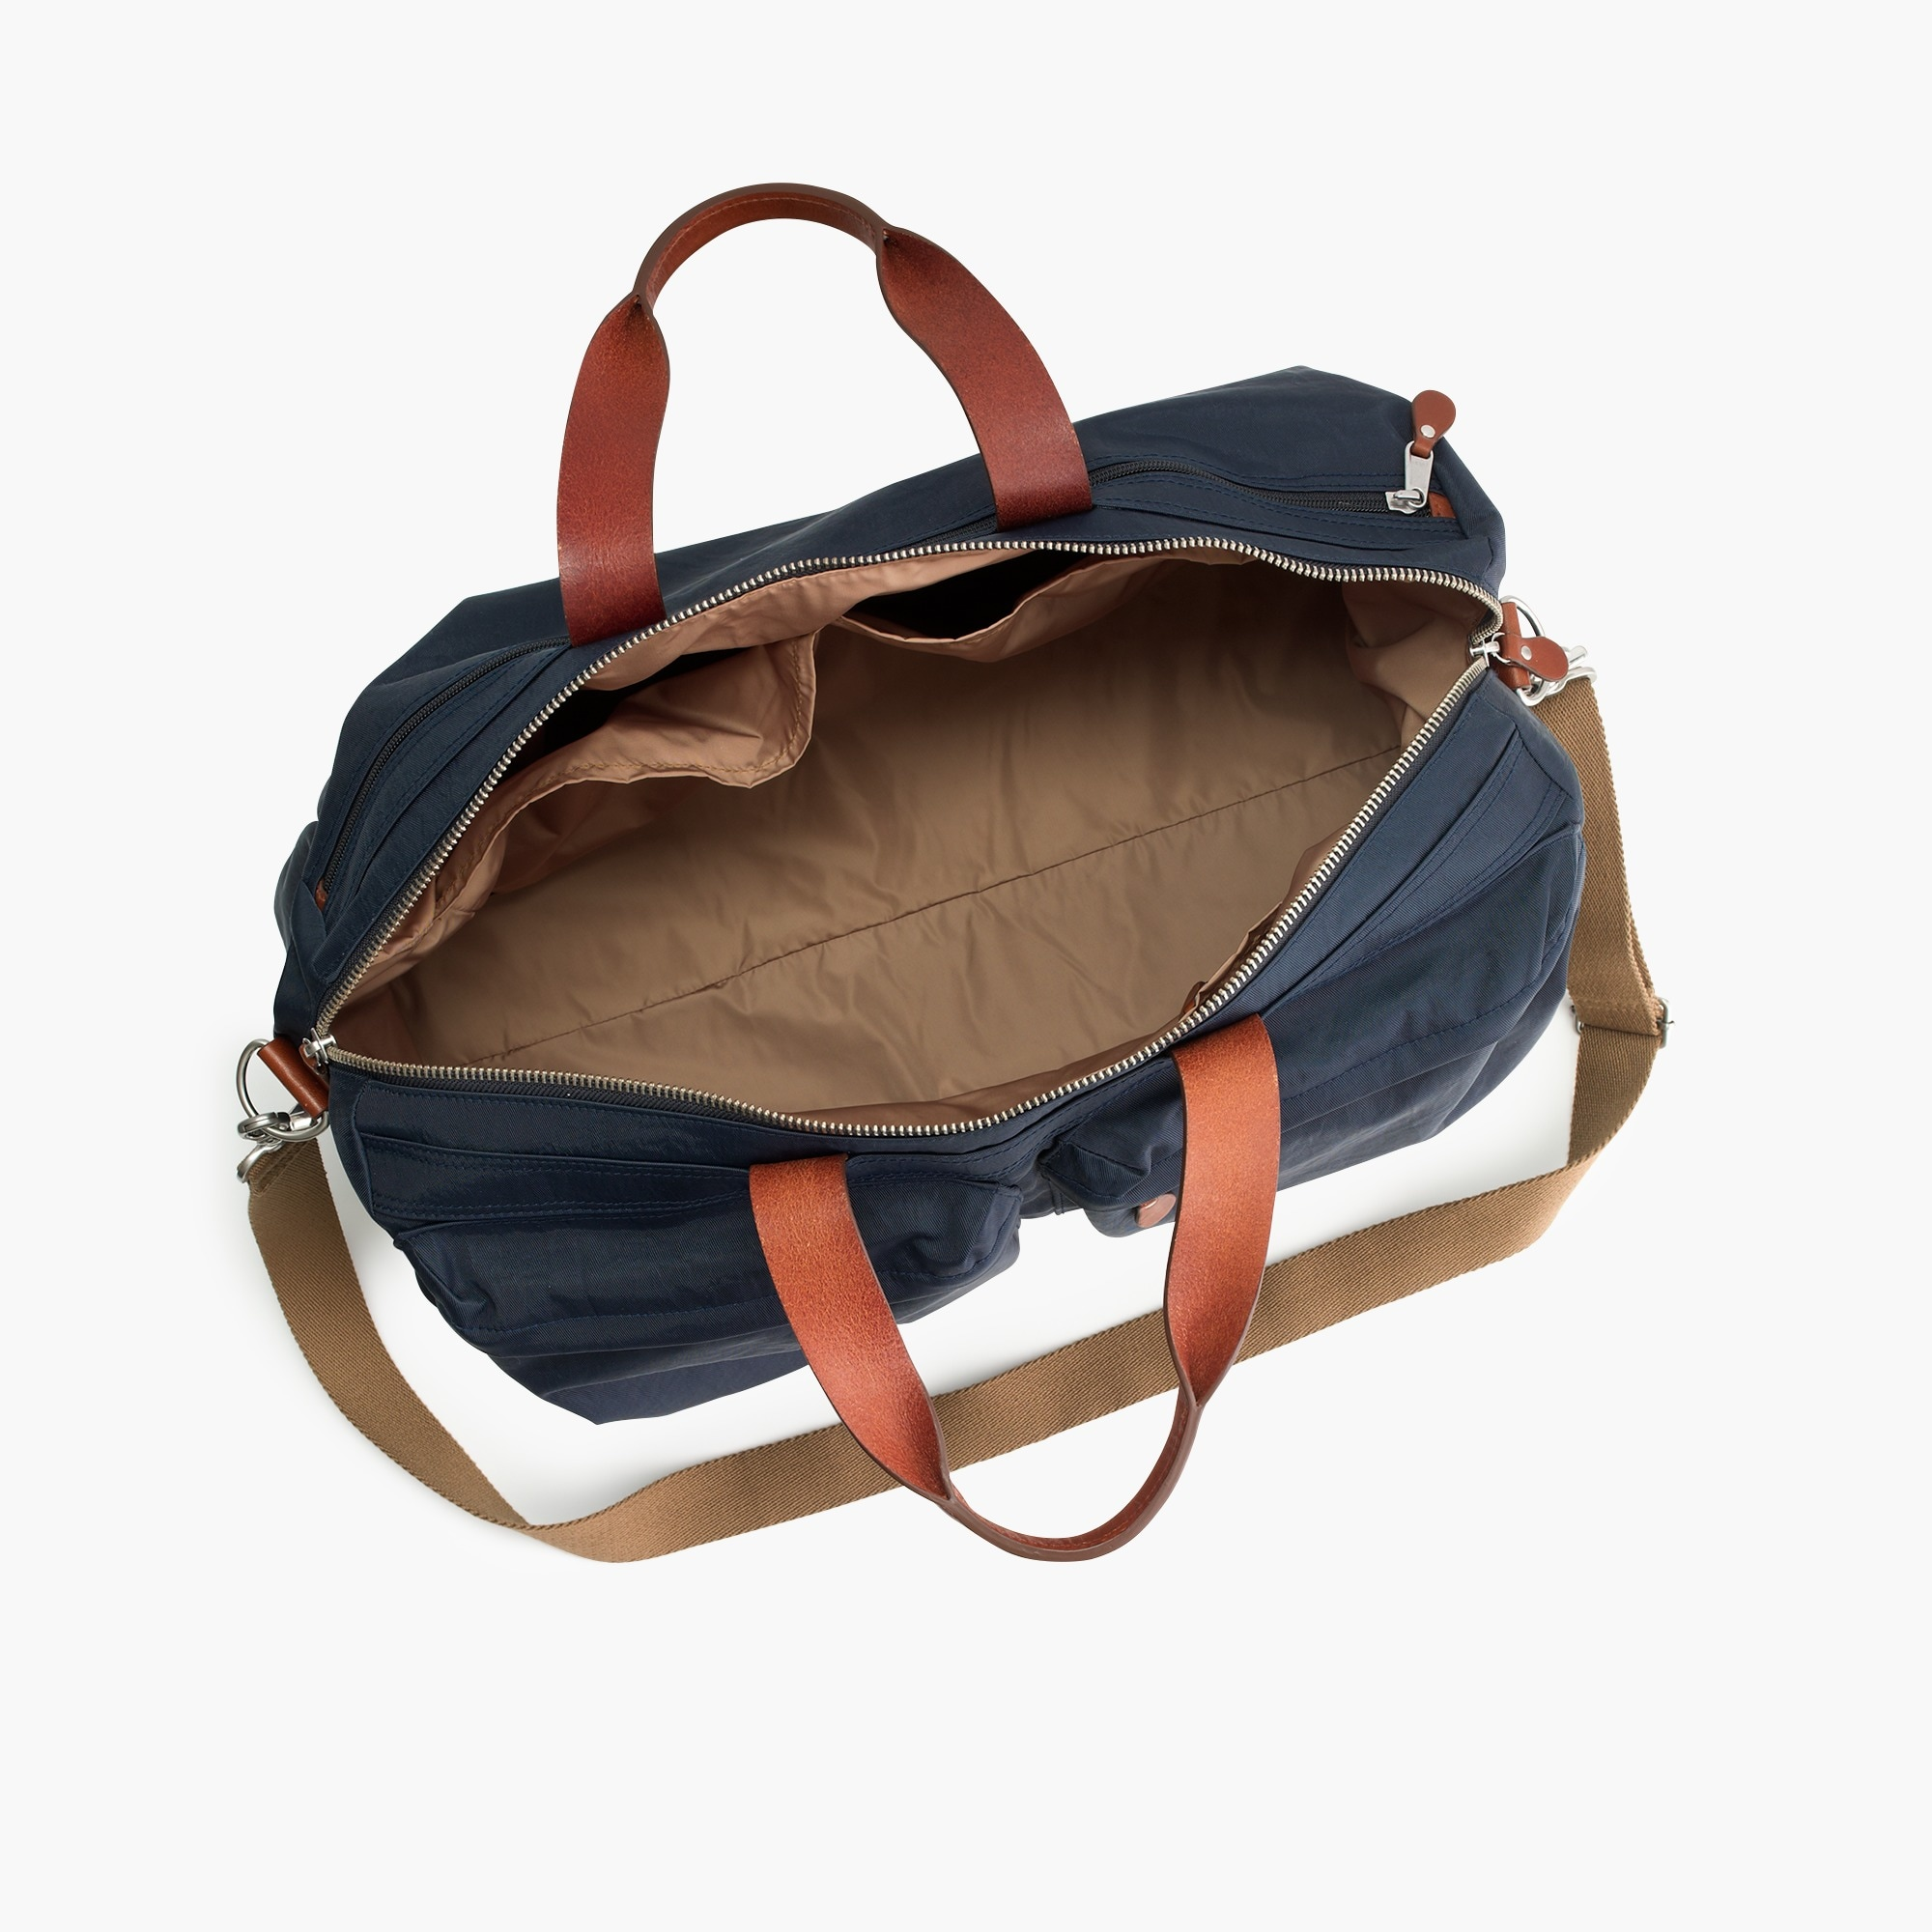 Image 3 for Harwick weekender bag